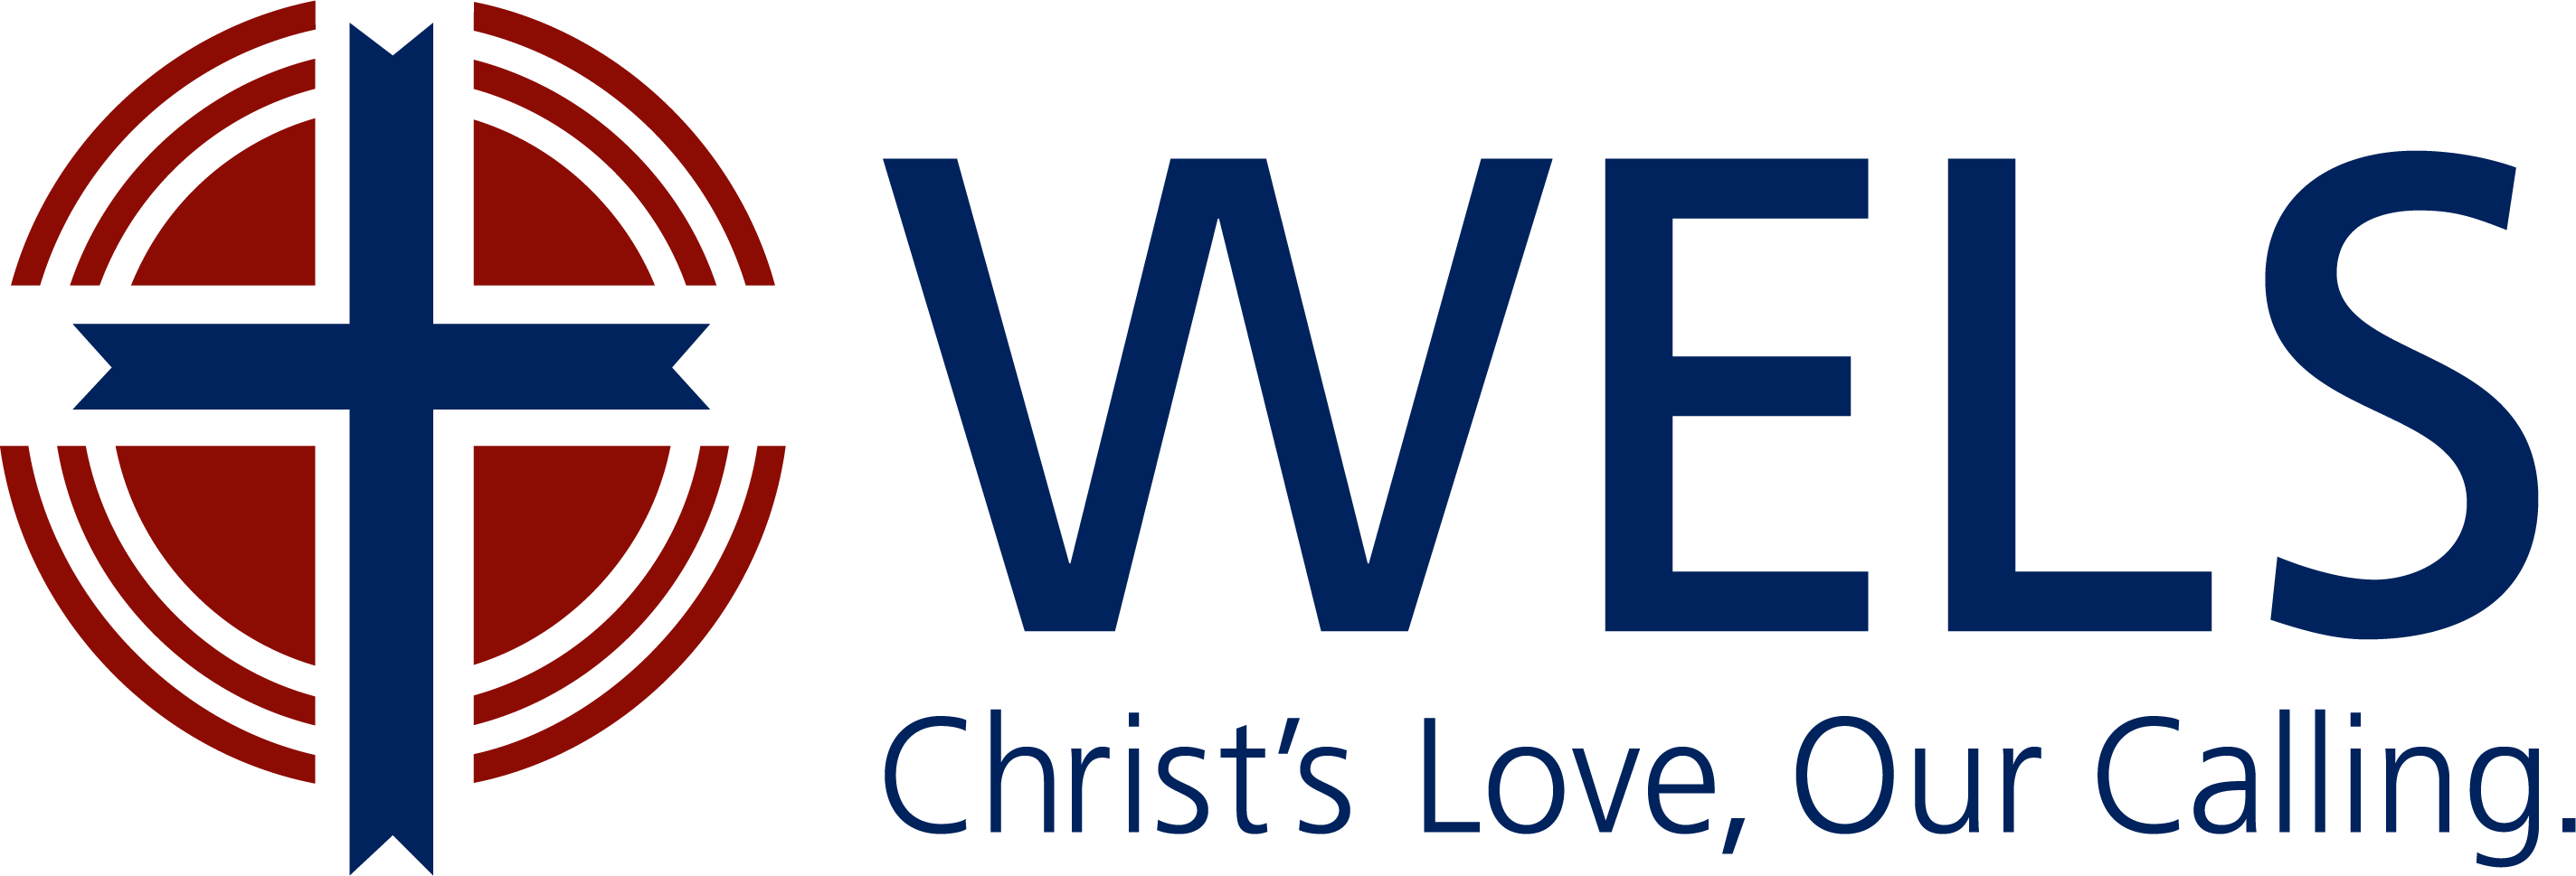 Logo for the Wisconsin Evangelical Lutheran Synod